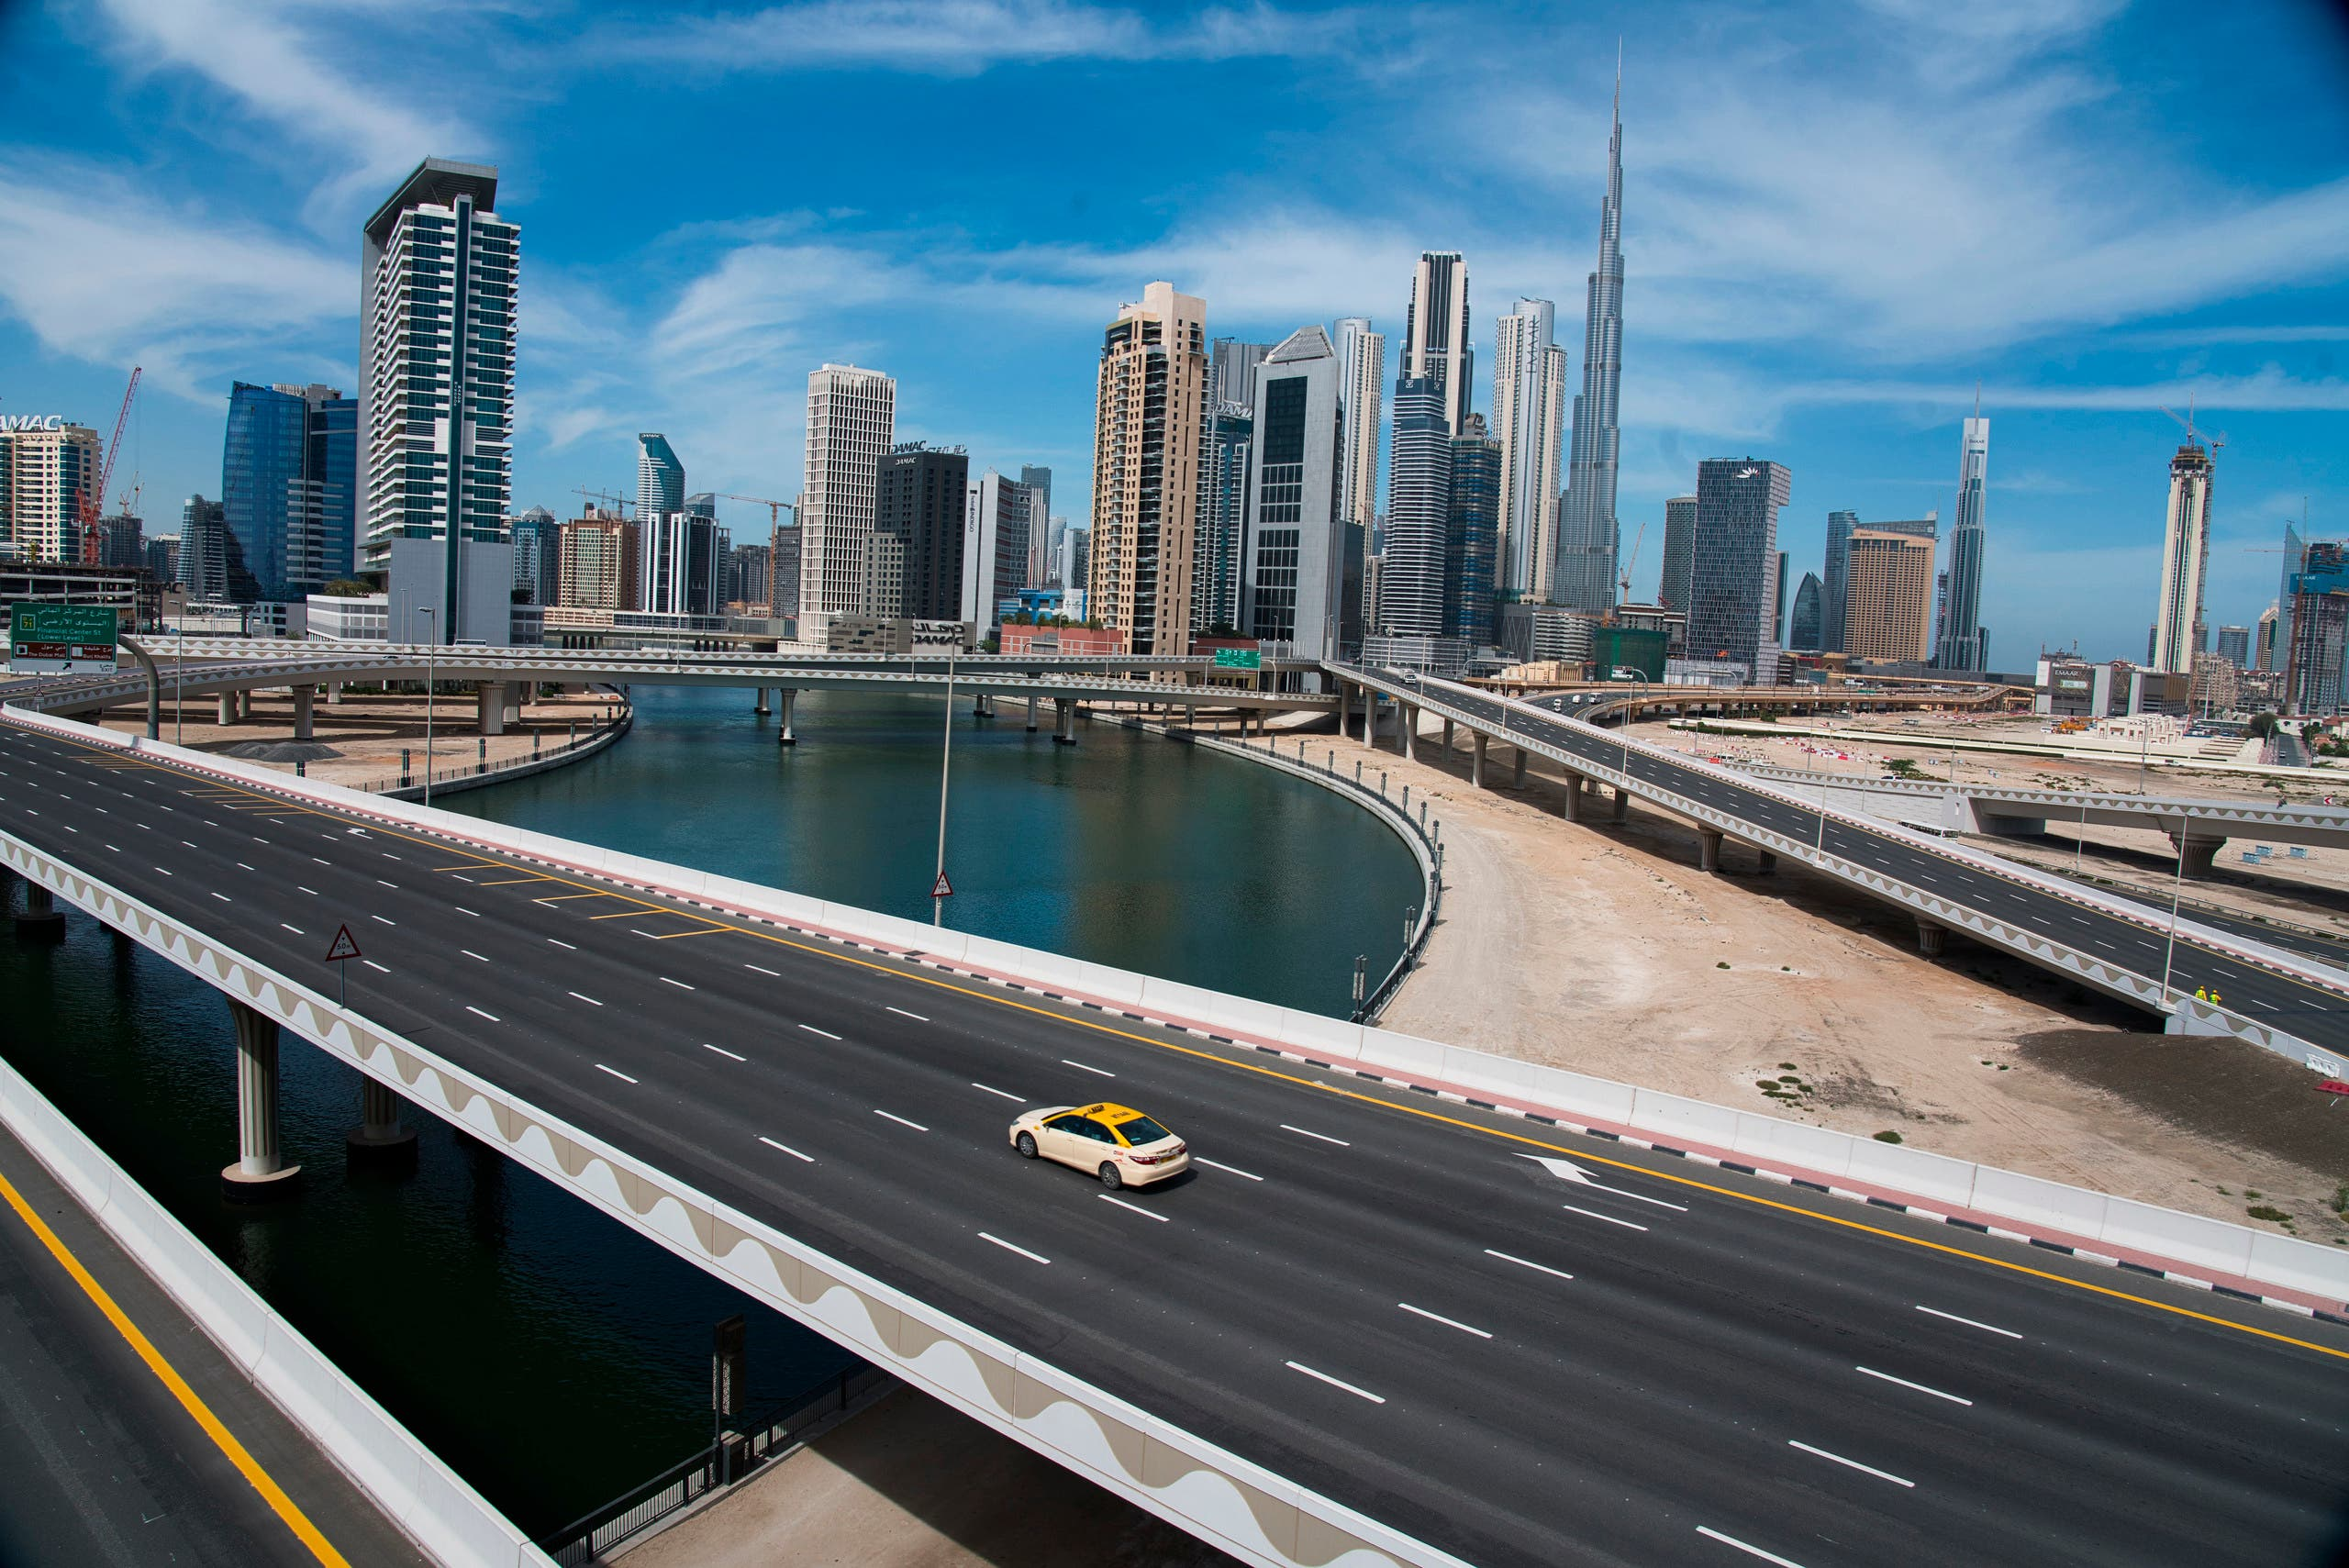 A lone taxi cab drives over a typically gridlocked highway with the Burj Khalifa, the world's tallest building, in the skyline behind it in Dubai, United Arab Emirates on April 6, 2020. (AP)